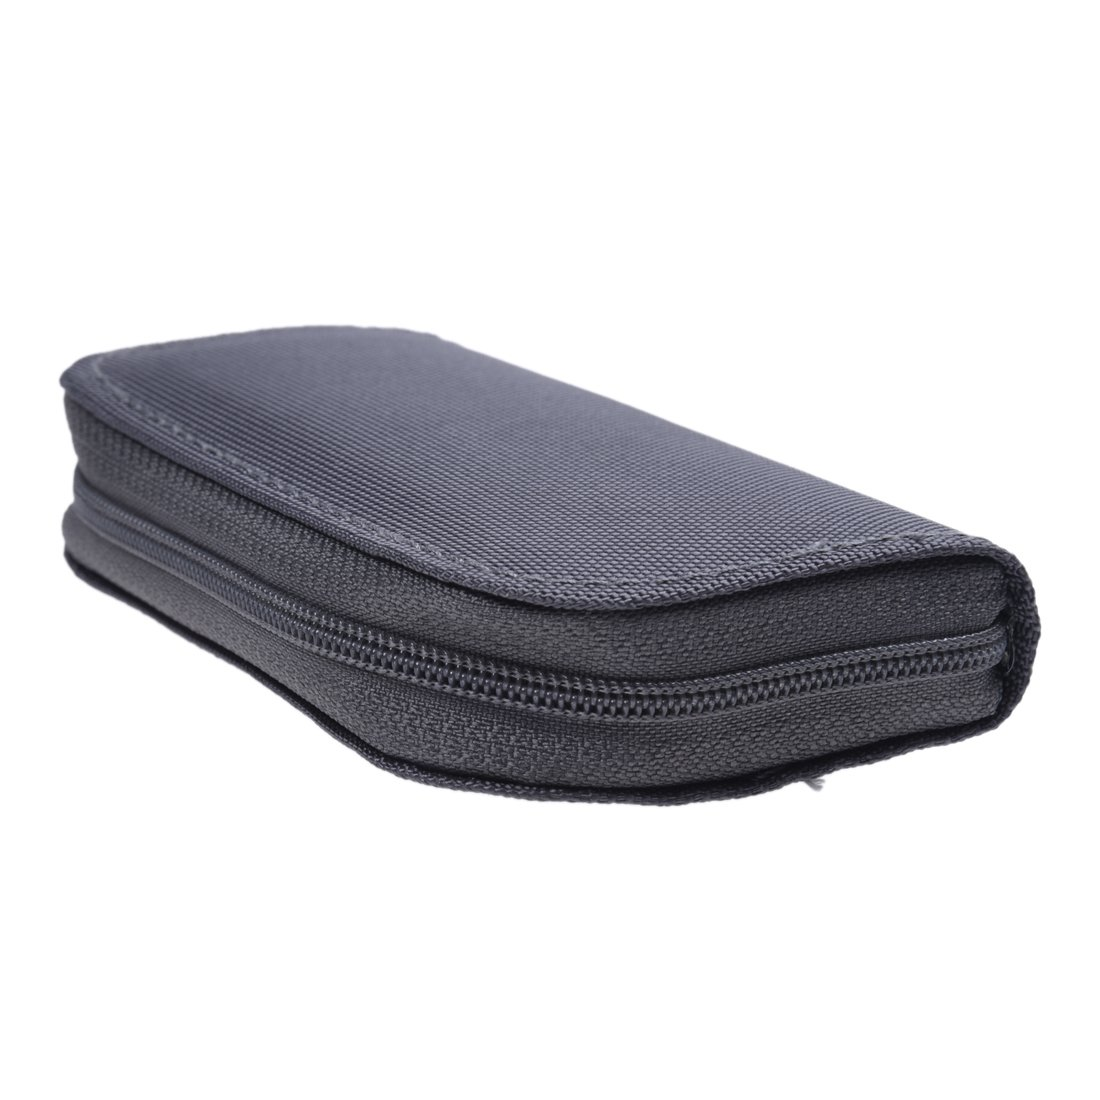 R 22 slots Pouch Holder For Micro Memory SD SDHC MMC CF Card Case SODIAL Multicolore gray